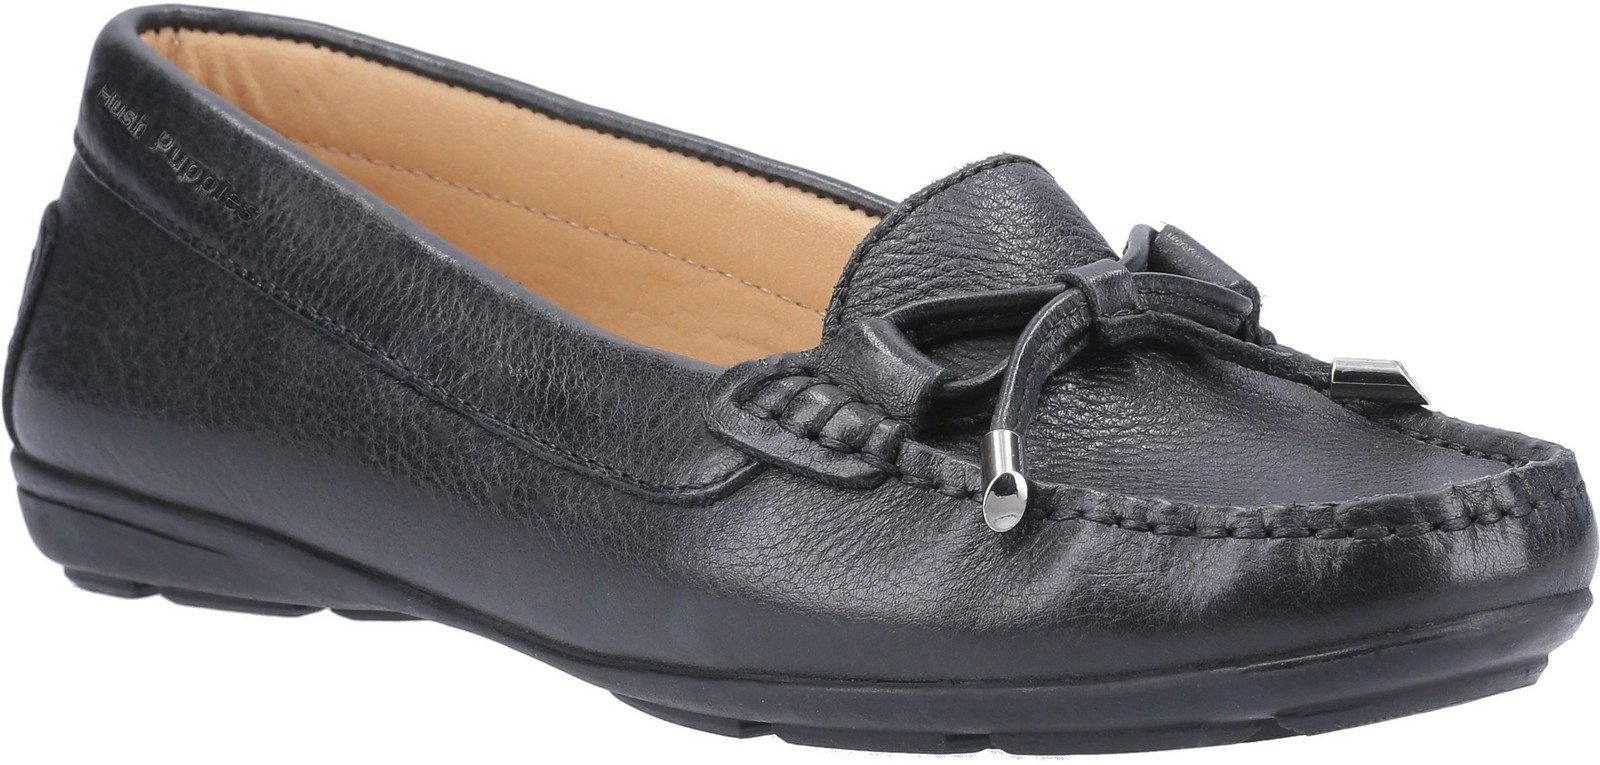 Hush Puppies Women's Maggie Slip On Loafer Shoe Various Colours 28405 - Black 3